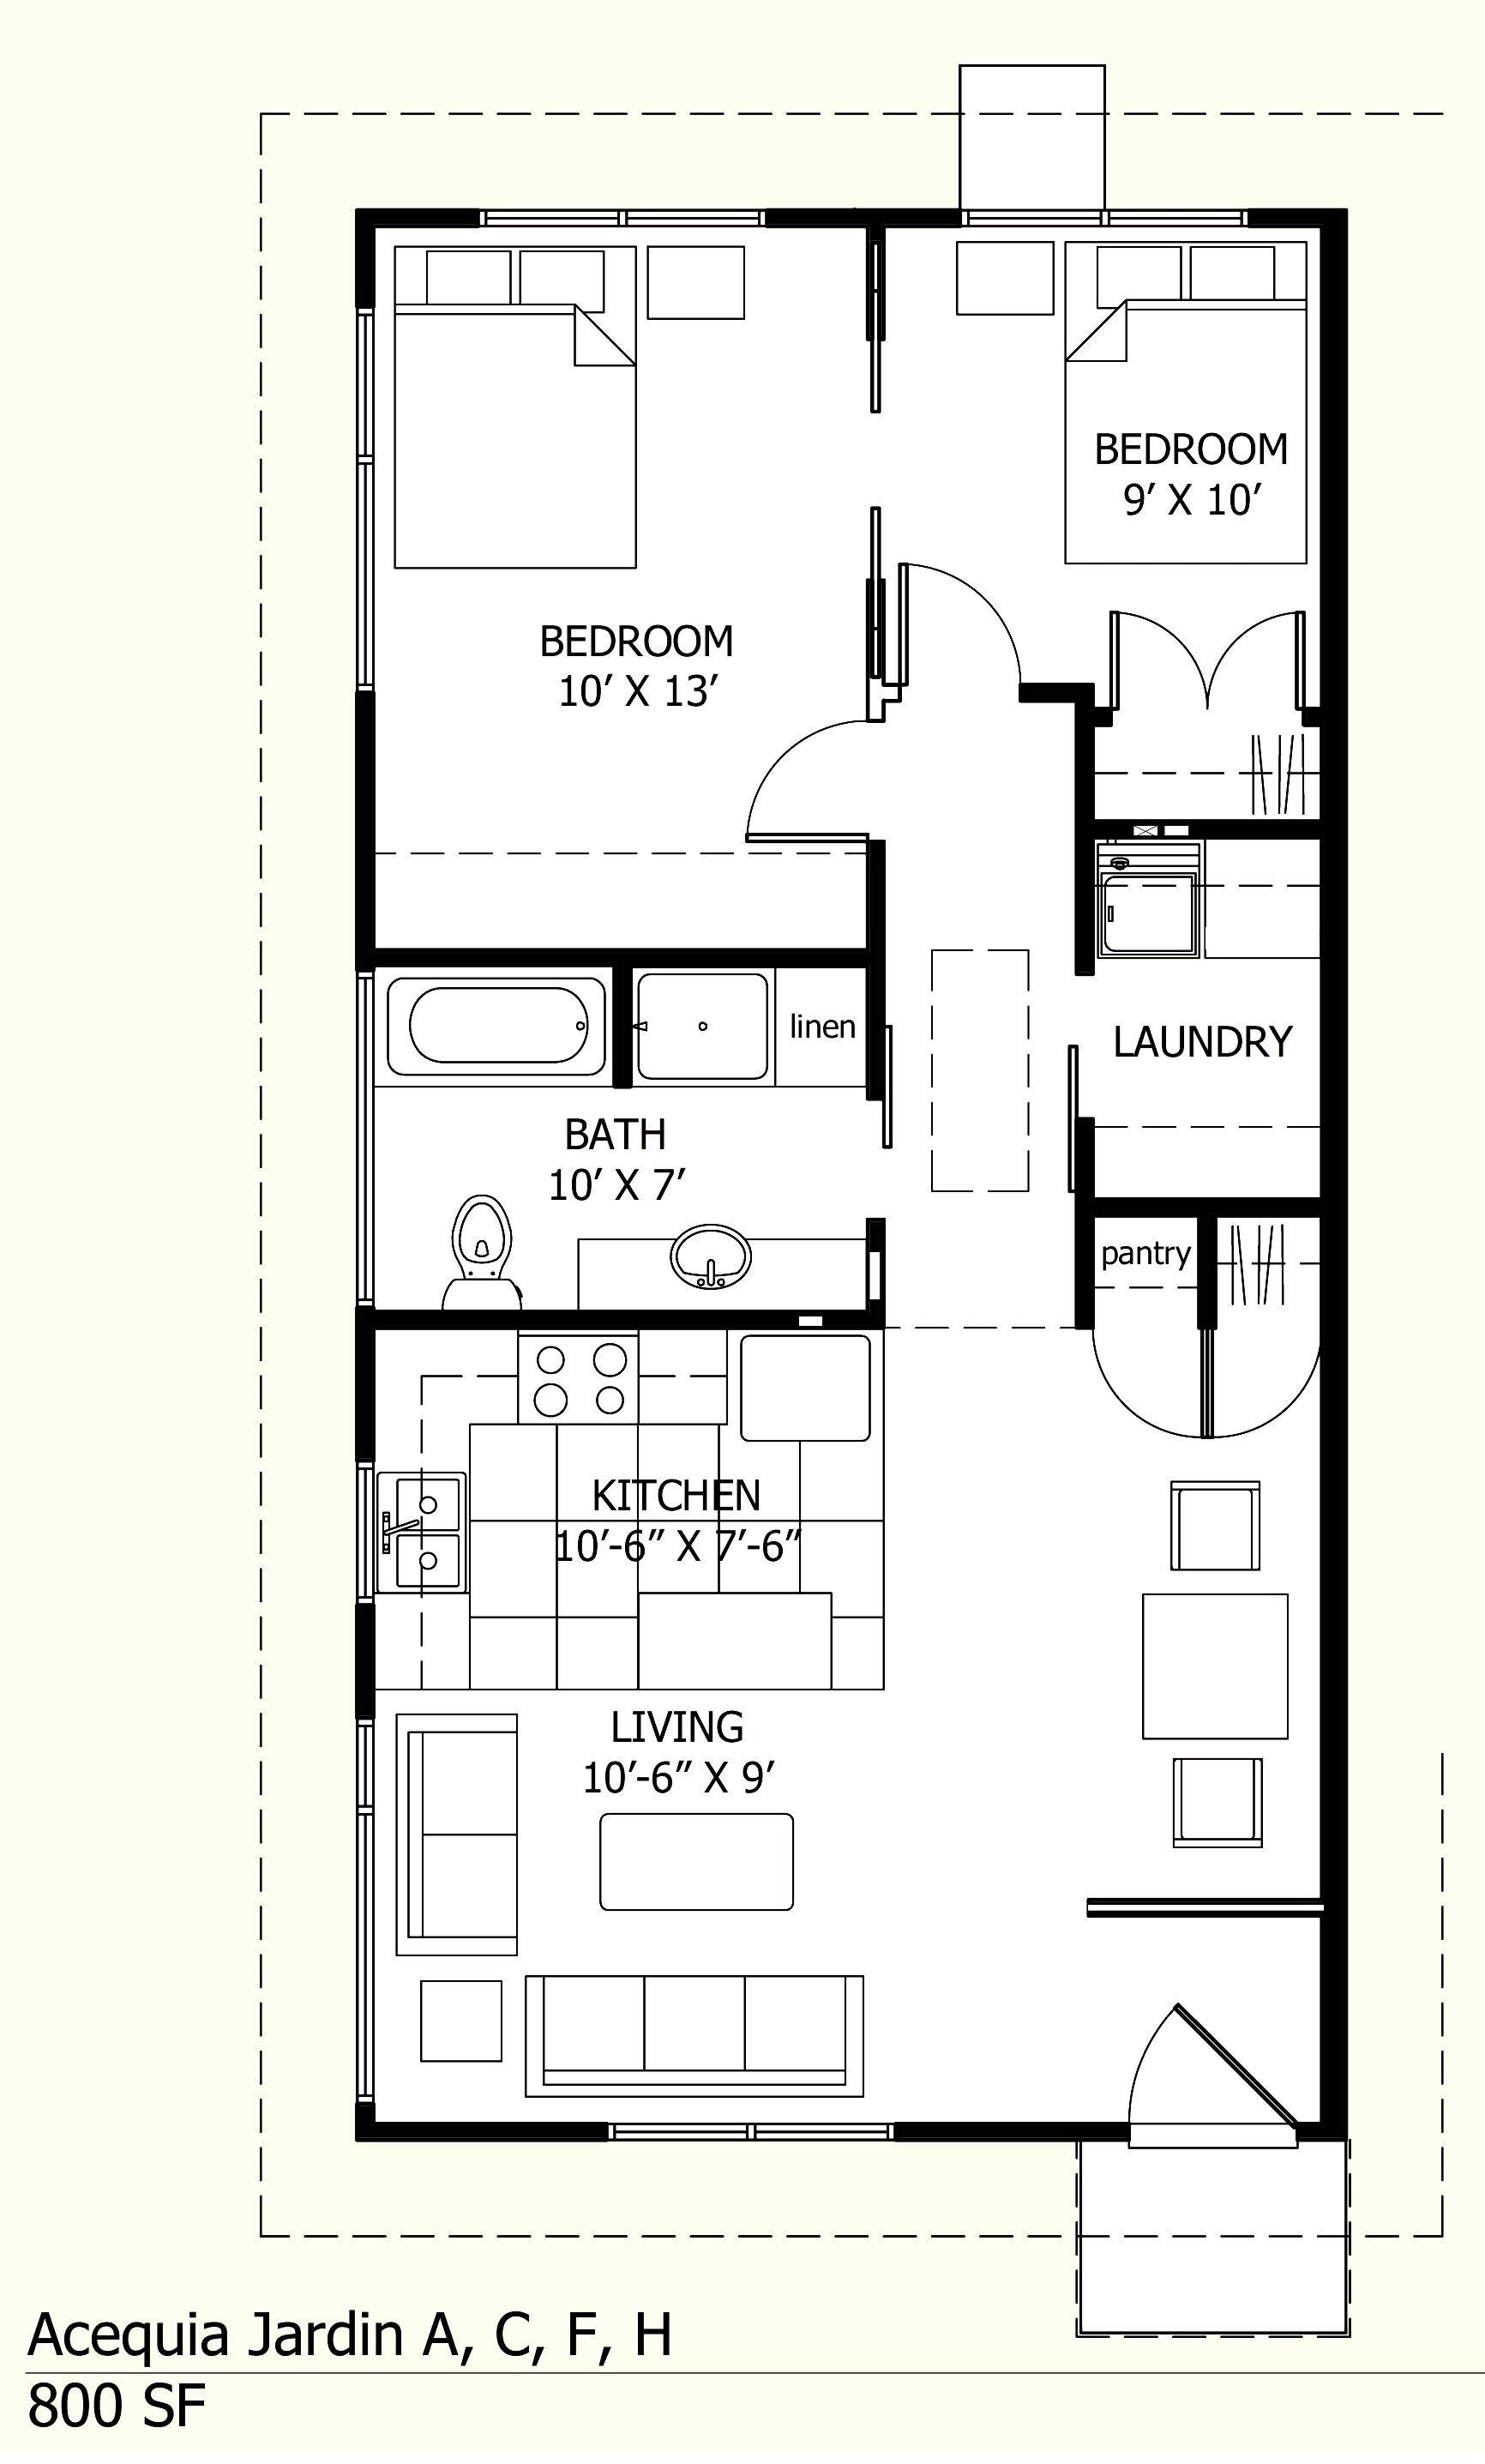 Cabin floor plans under 700 sq ft as well as home plan collection along with unique small house plans under 1000 sq ft further 600 sq ft house plans